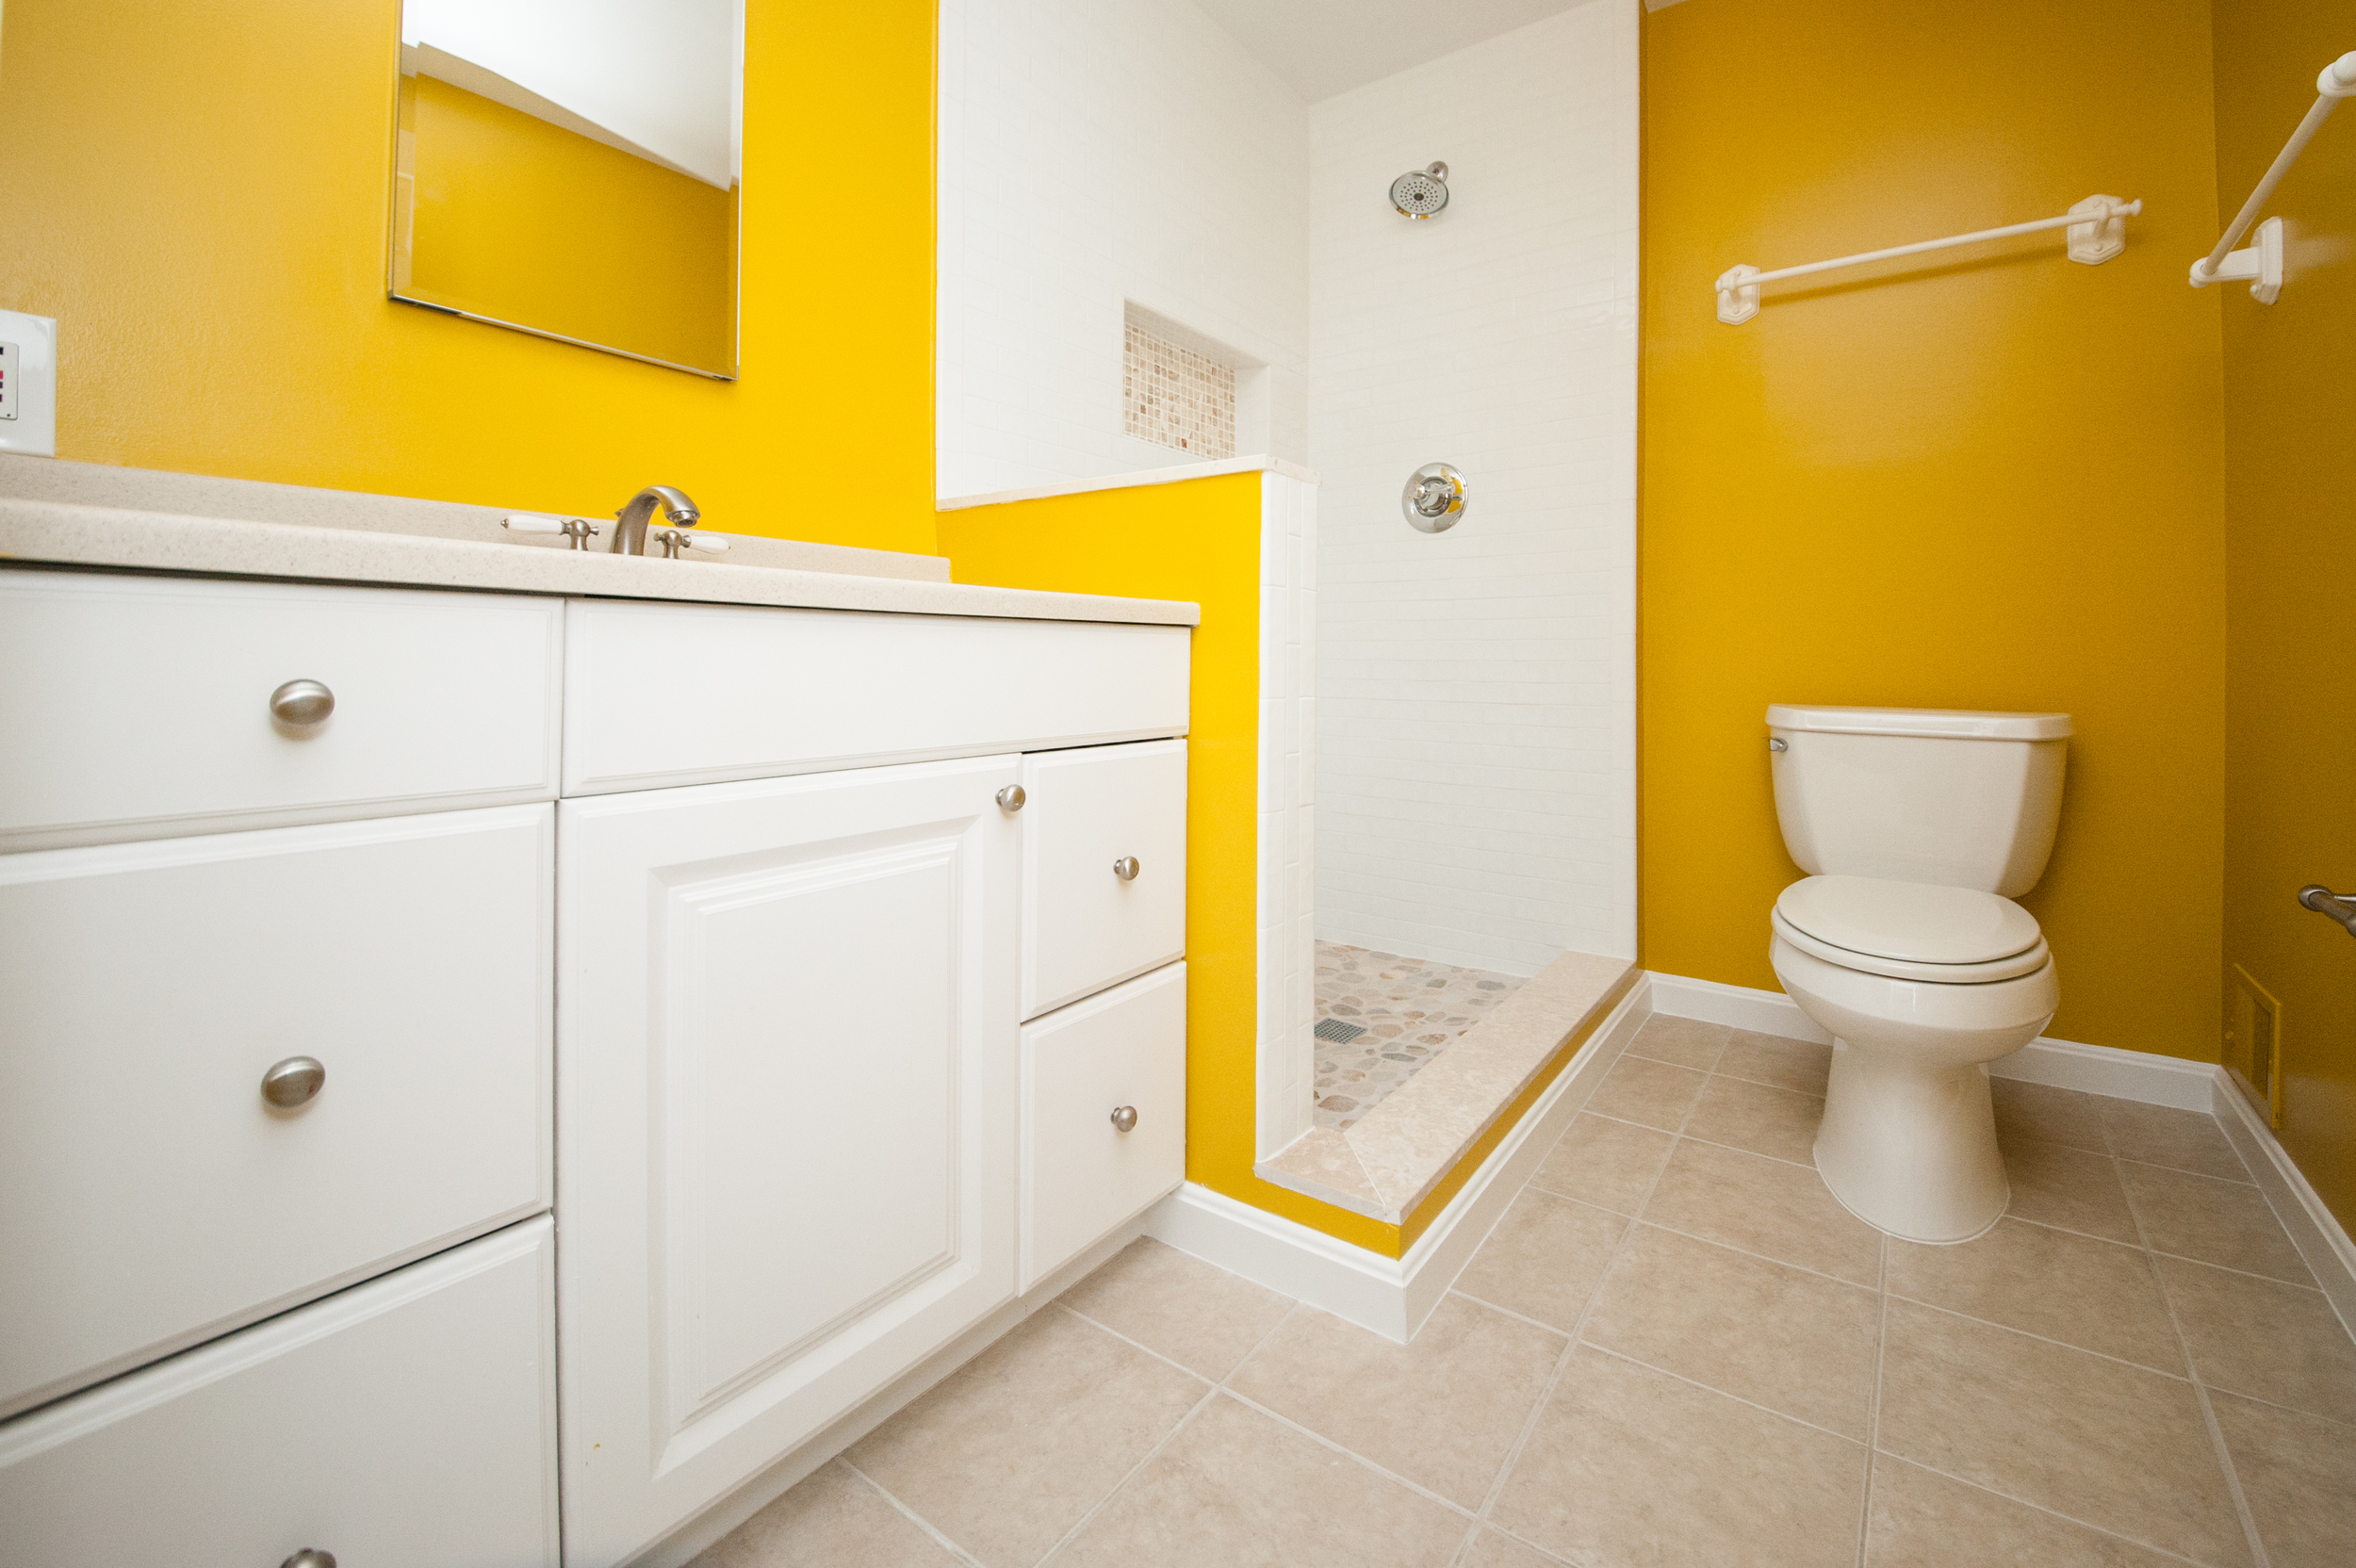 Bathroom Remodeling Baltimore Md Model gvidui -bathroom remodeling — euro design remodel - remodeler with